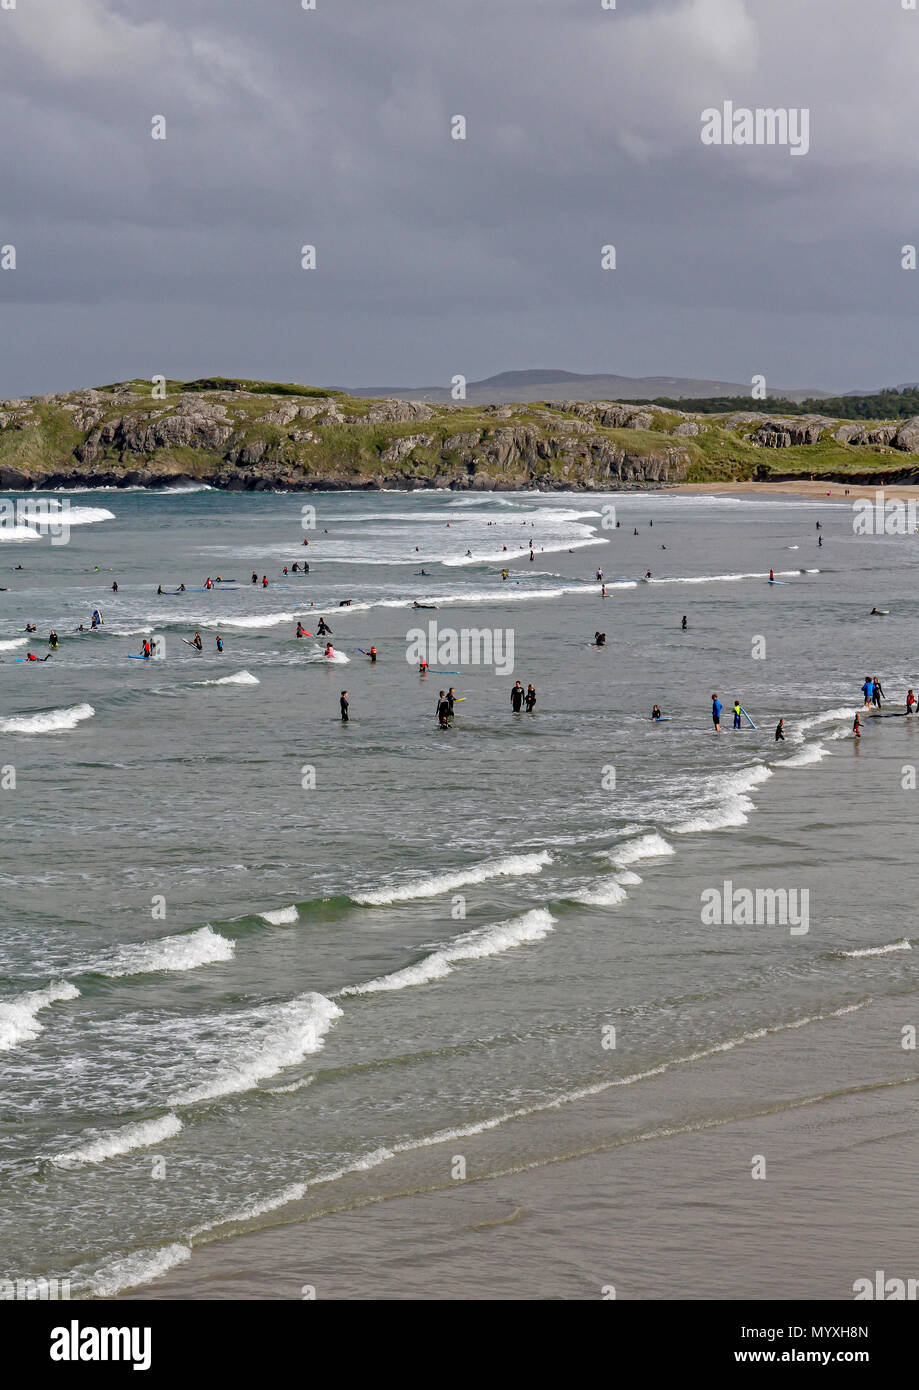 Groups of people surfing in County Donegal Ireland as summer surf schools take place in the Atlantic surf. - Stock Image